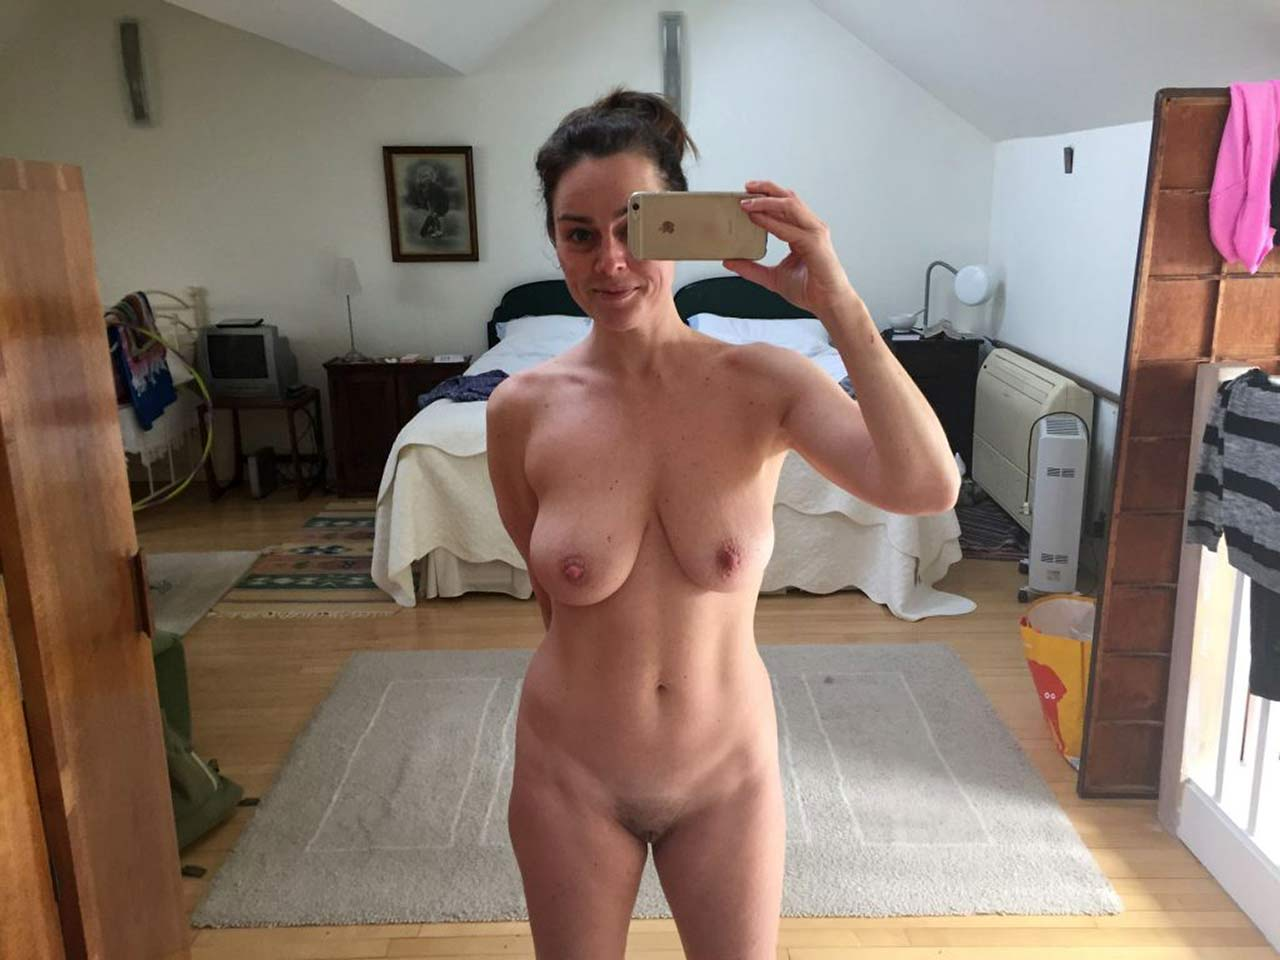 from Billy naked pics of jill clayberge